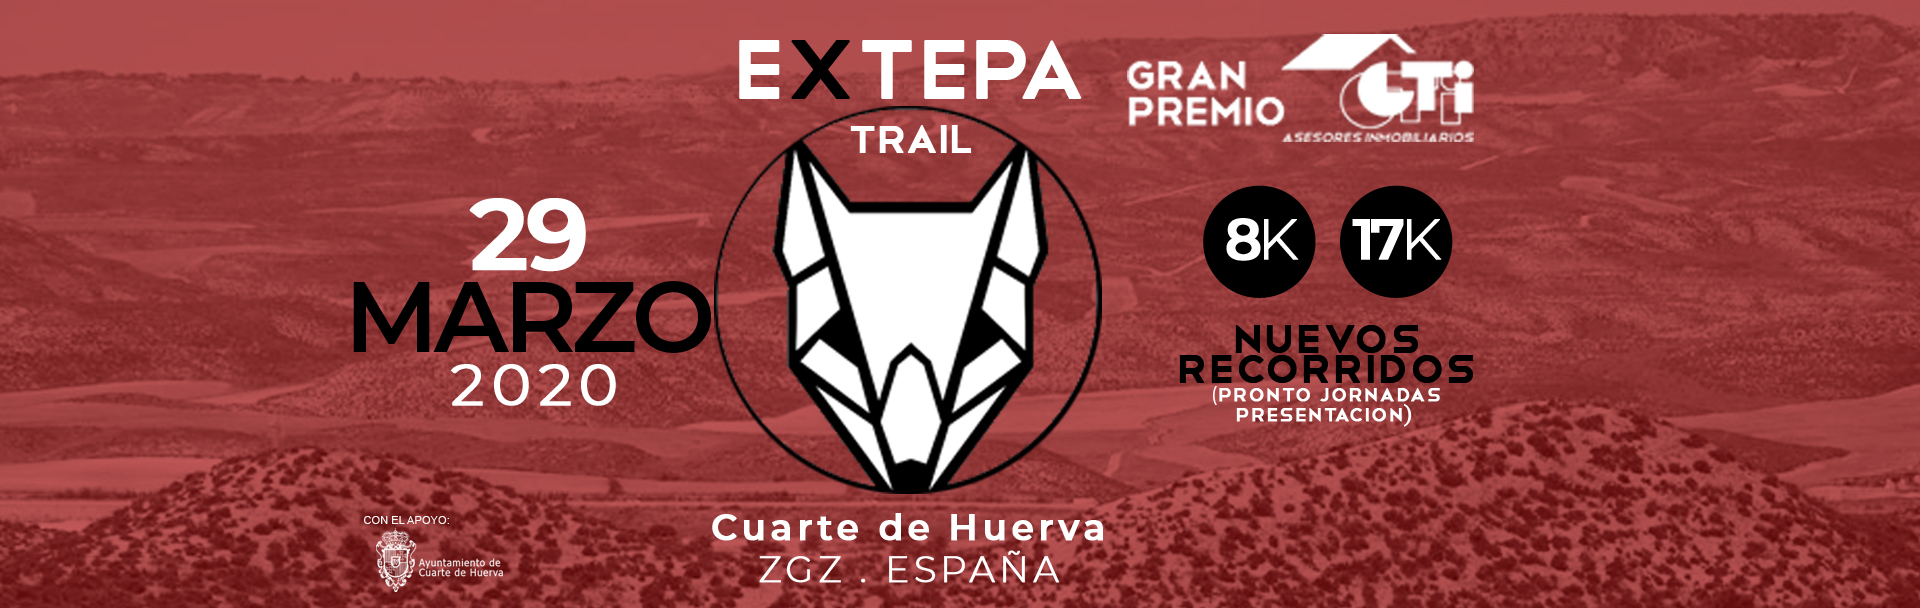 Extepa trail